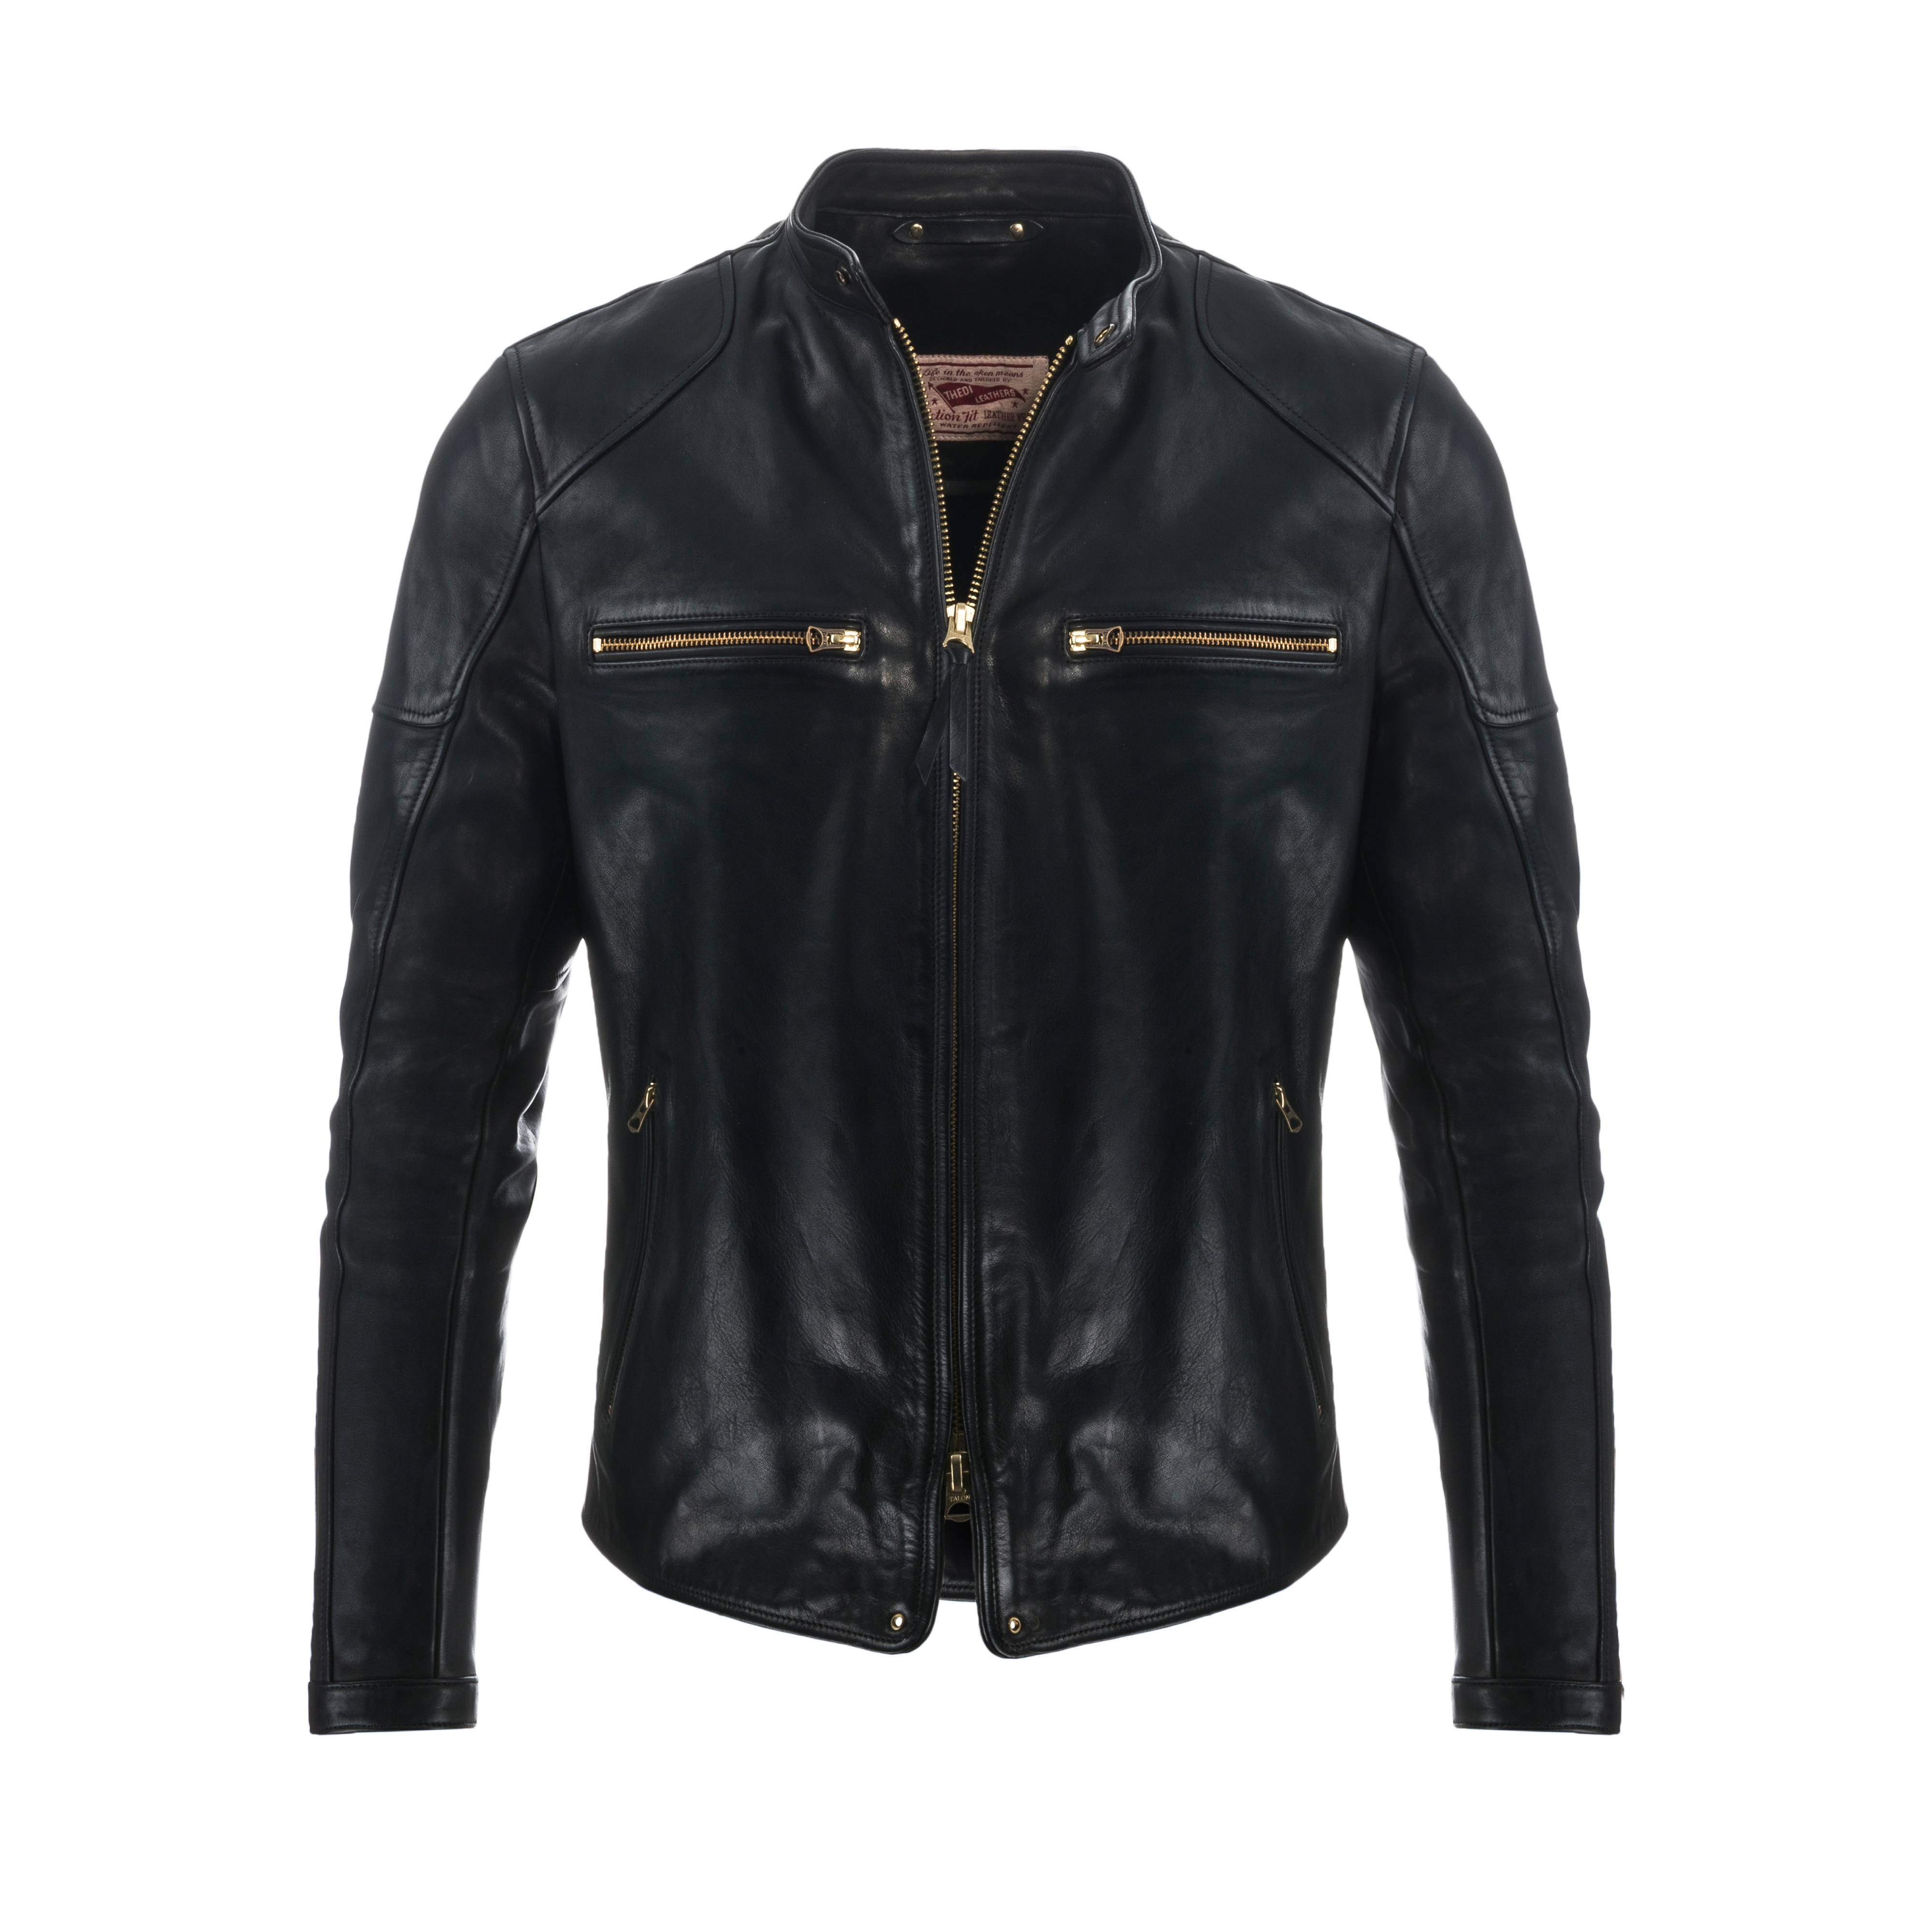 Caferacer Leather Jacket Black